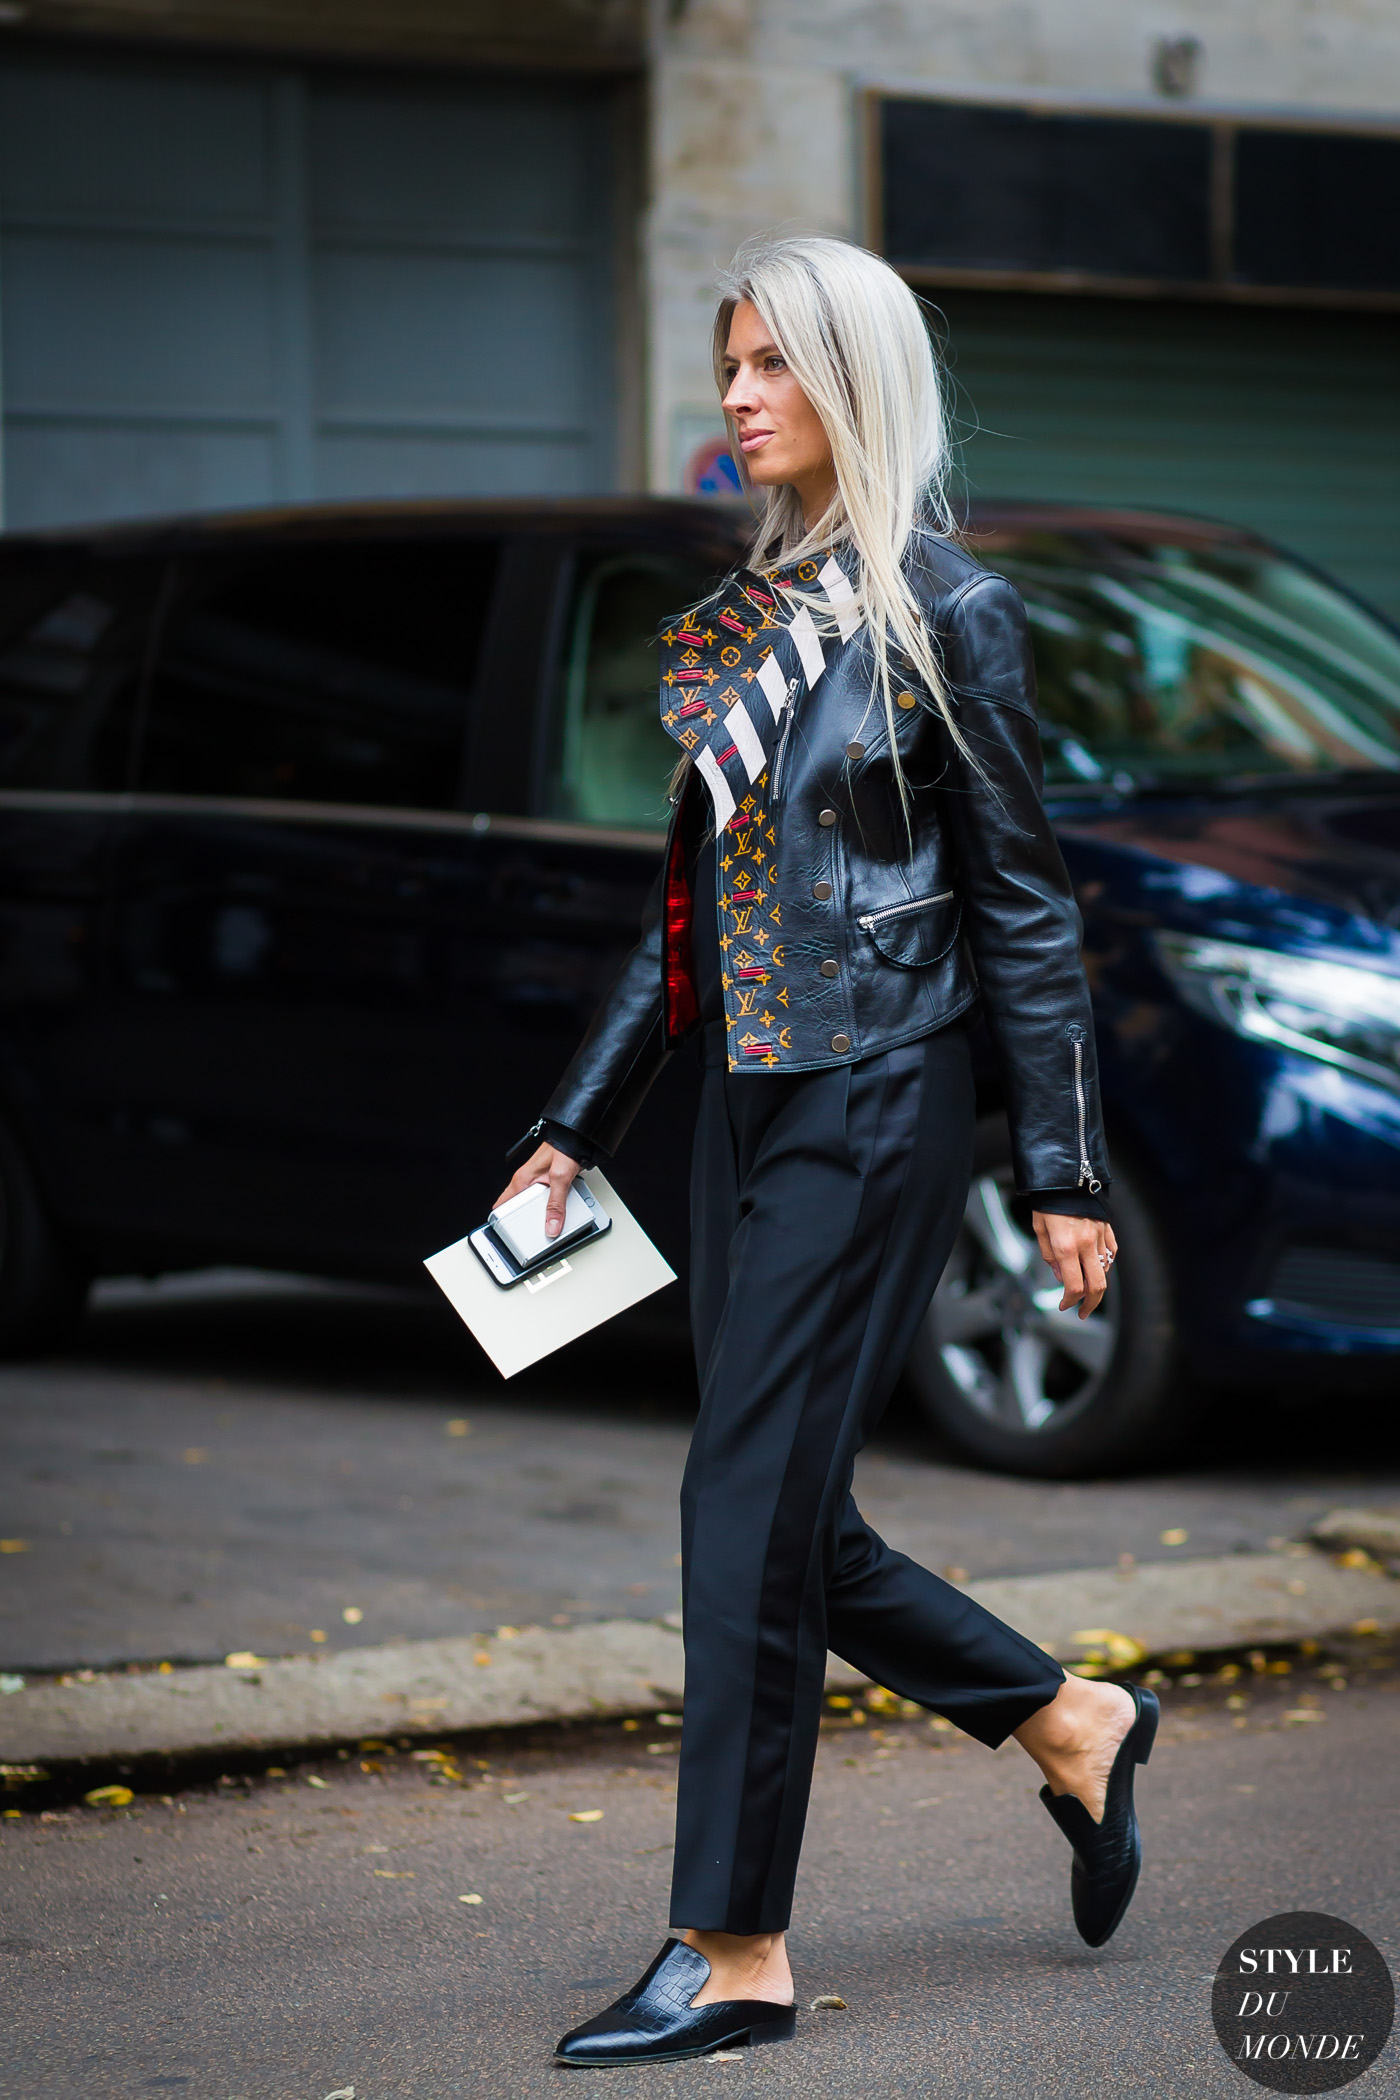 sarah-harris-by-styledumonde-street-style-fashion-photography